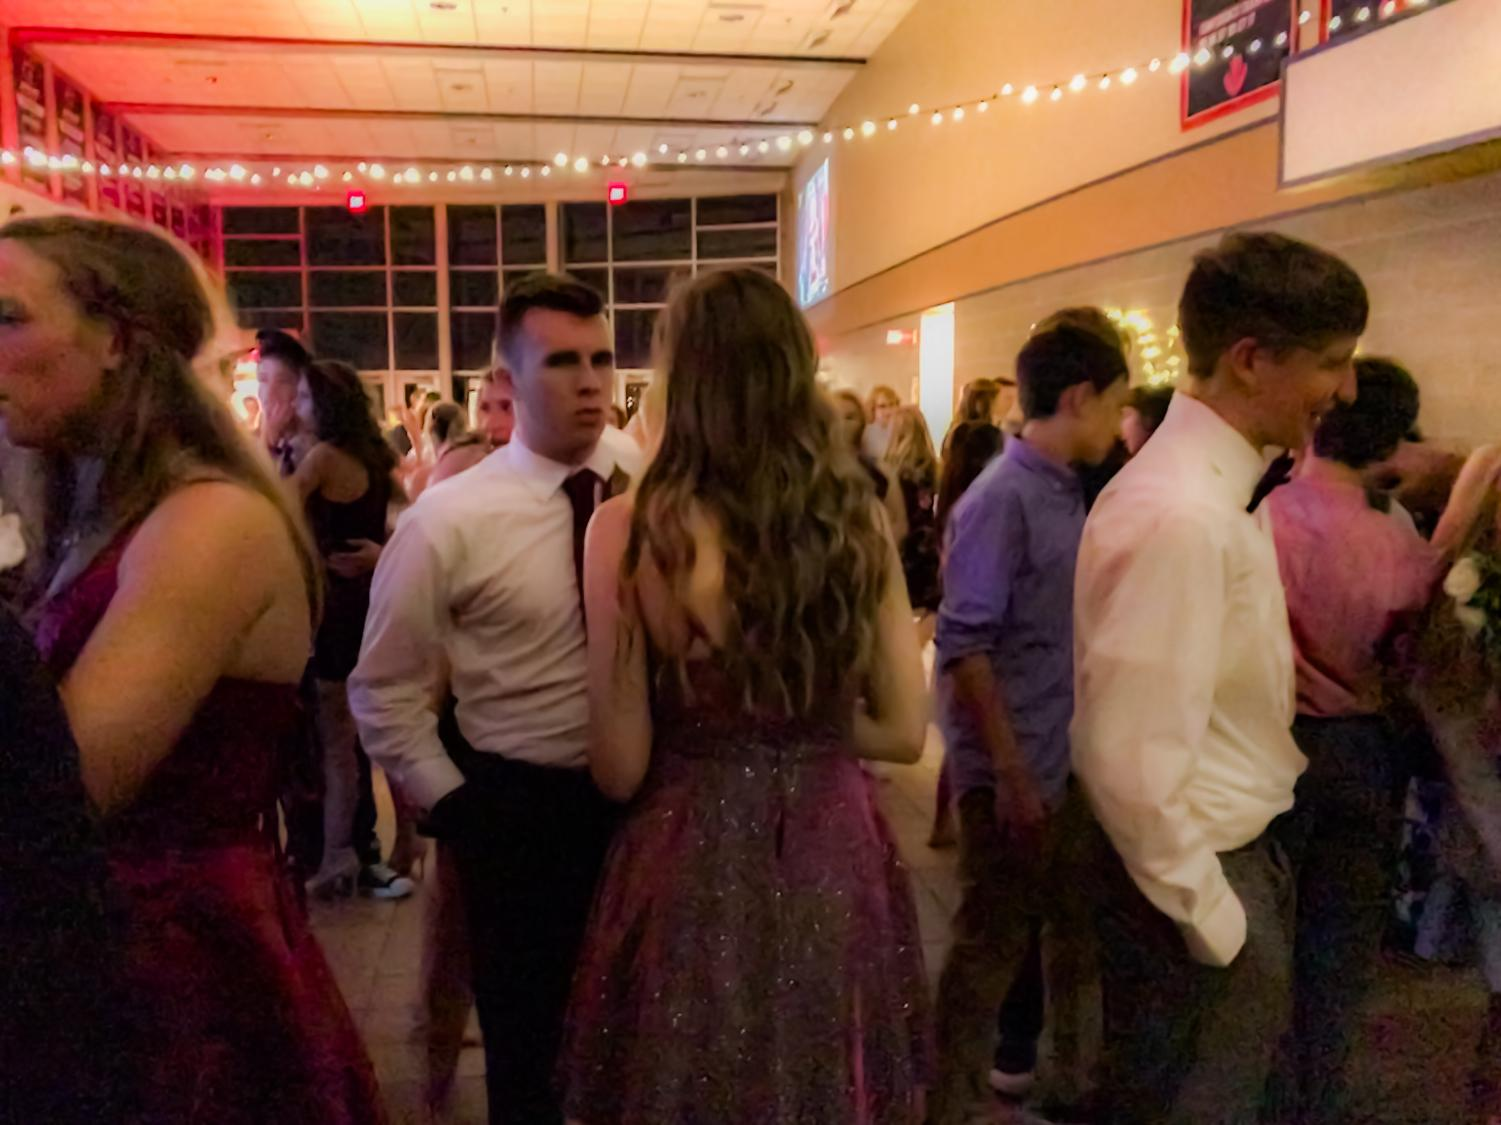 Senior Noah Vanderzwaag converses with his date at the 2019-2020 Homecoming Dance on Saturday, September 14.